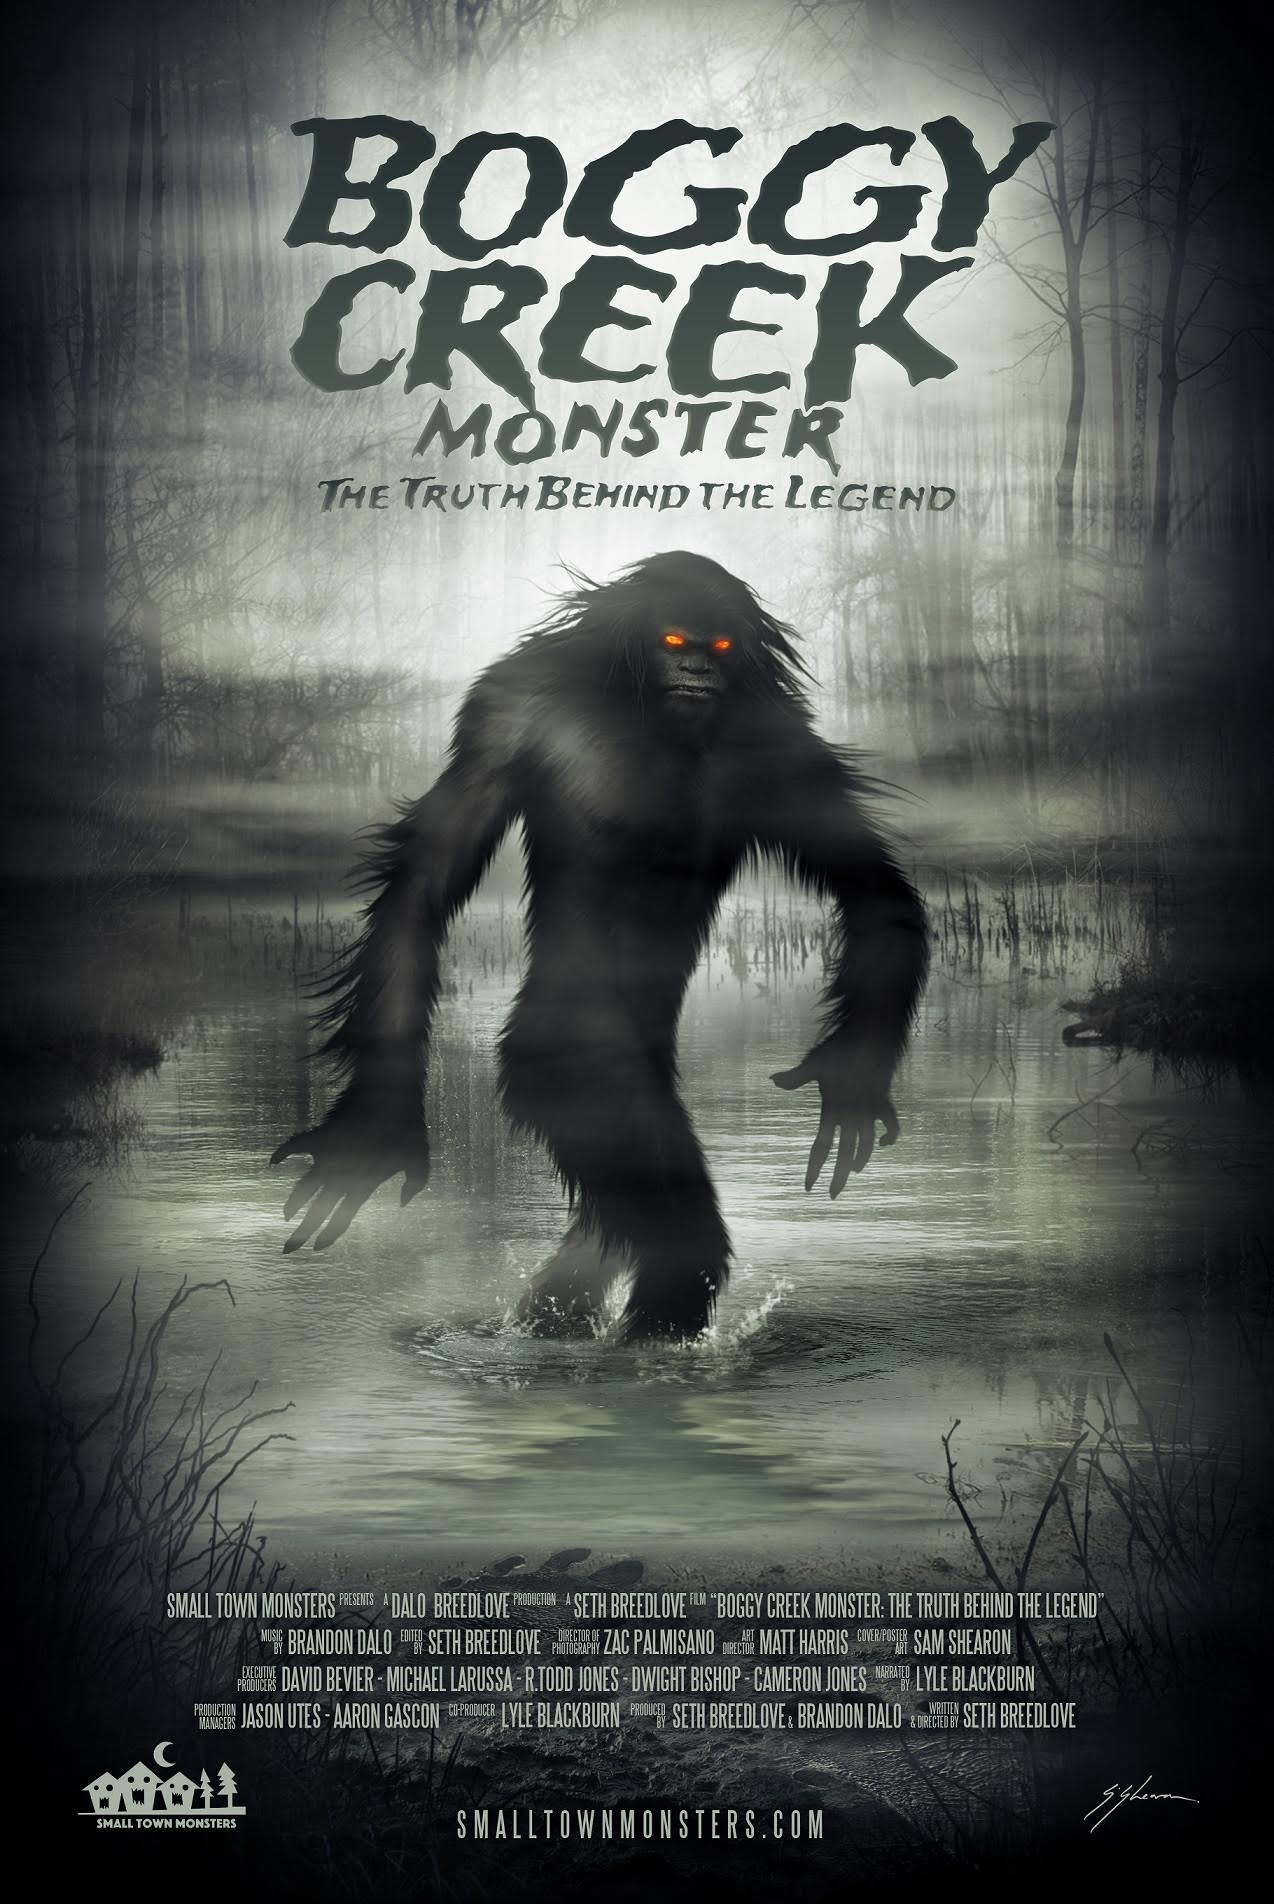 boggy creek monster 1 - Boggy Creek Monster Rising From the Murky Depths Next Month